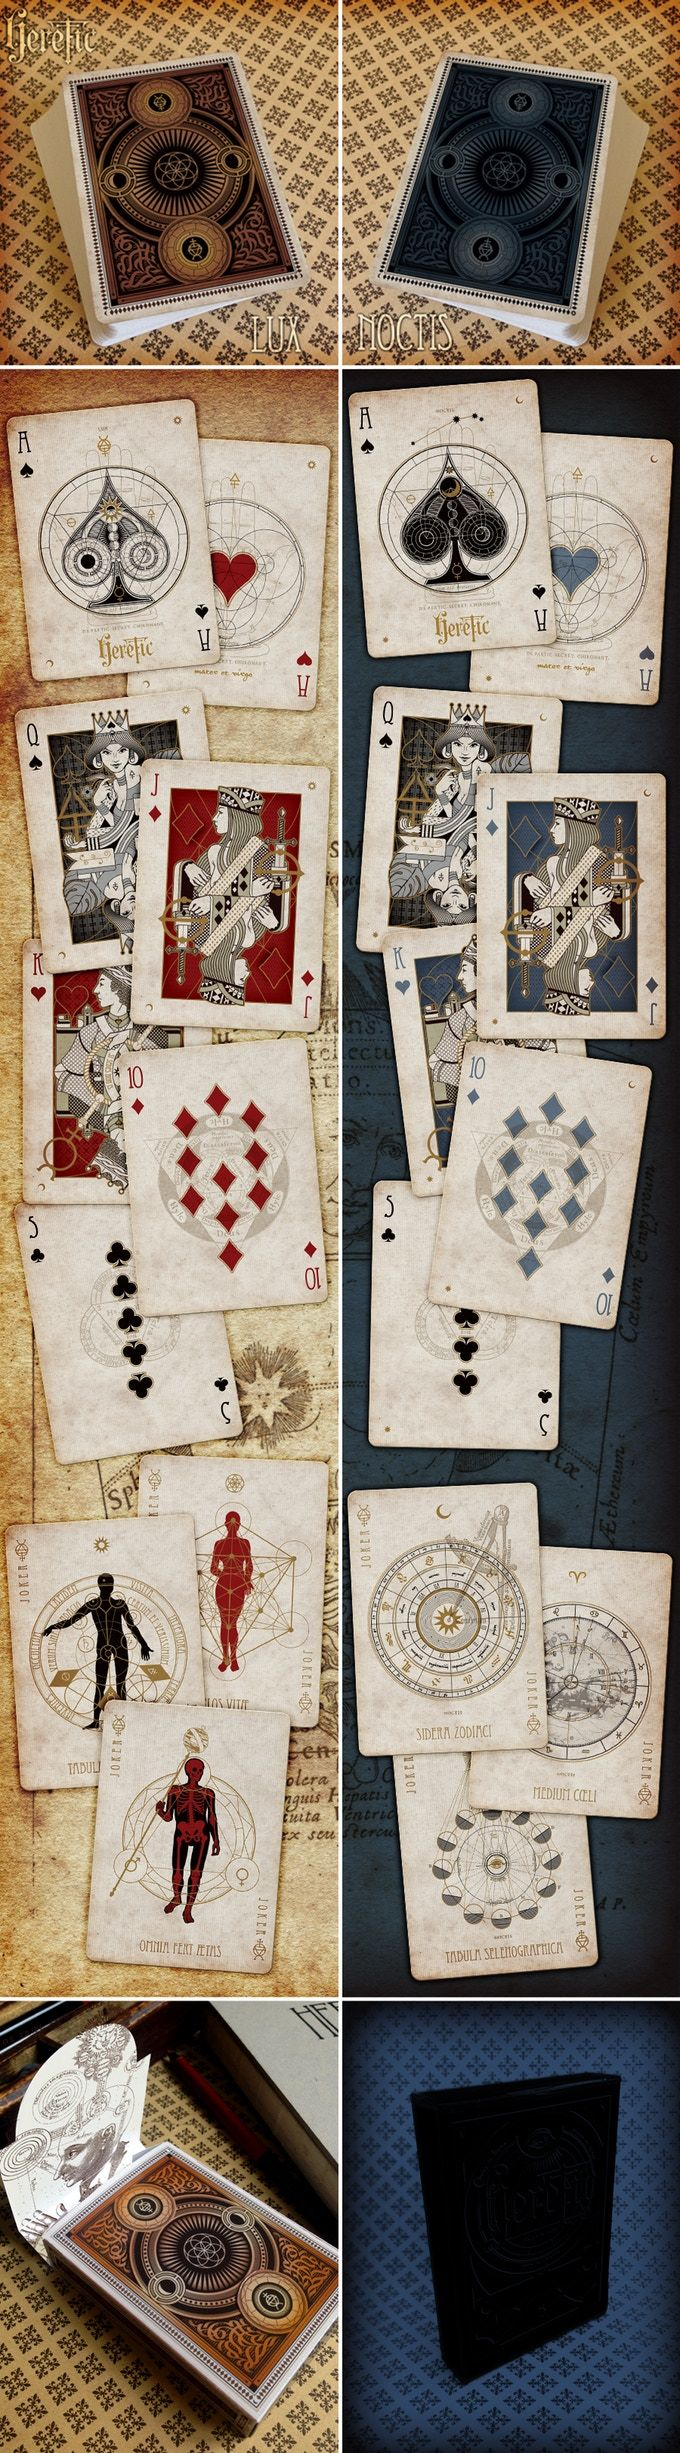 Custom playing cards - poker size - Master finish printed by EPCC at Conjuring Arts, New York City. Limited Edition.